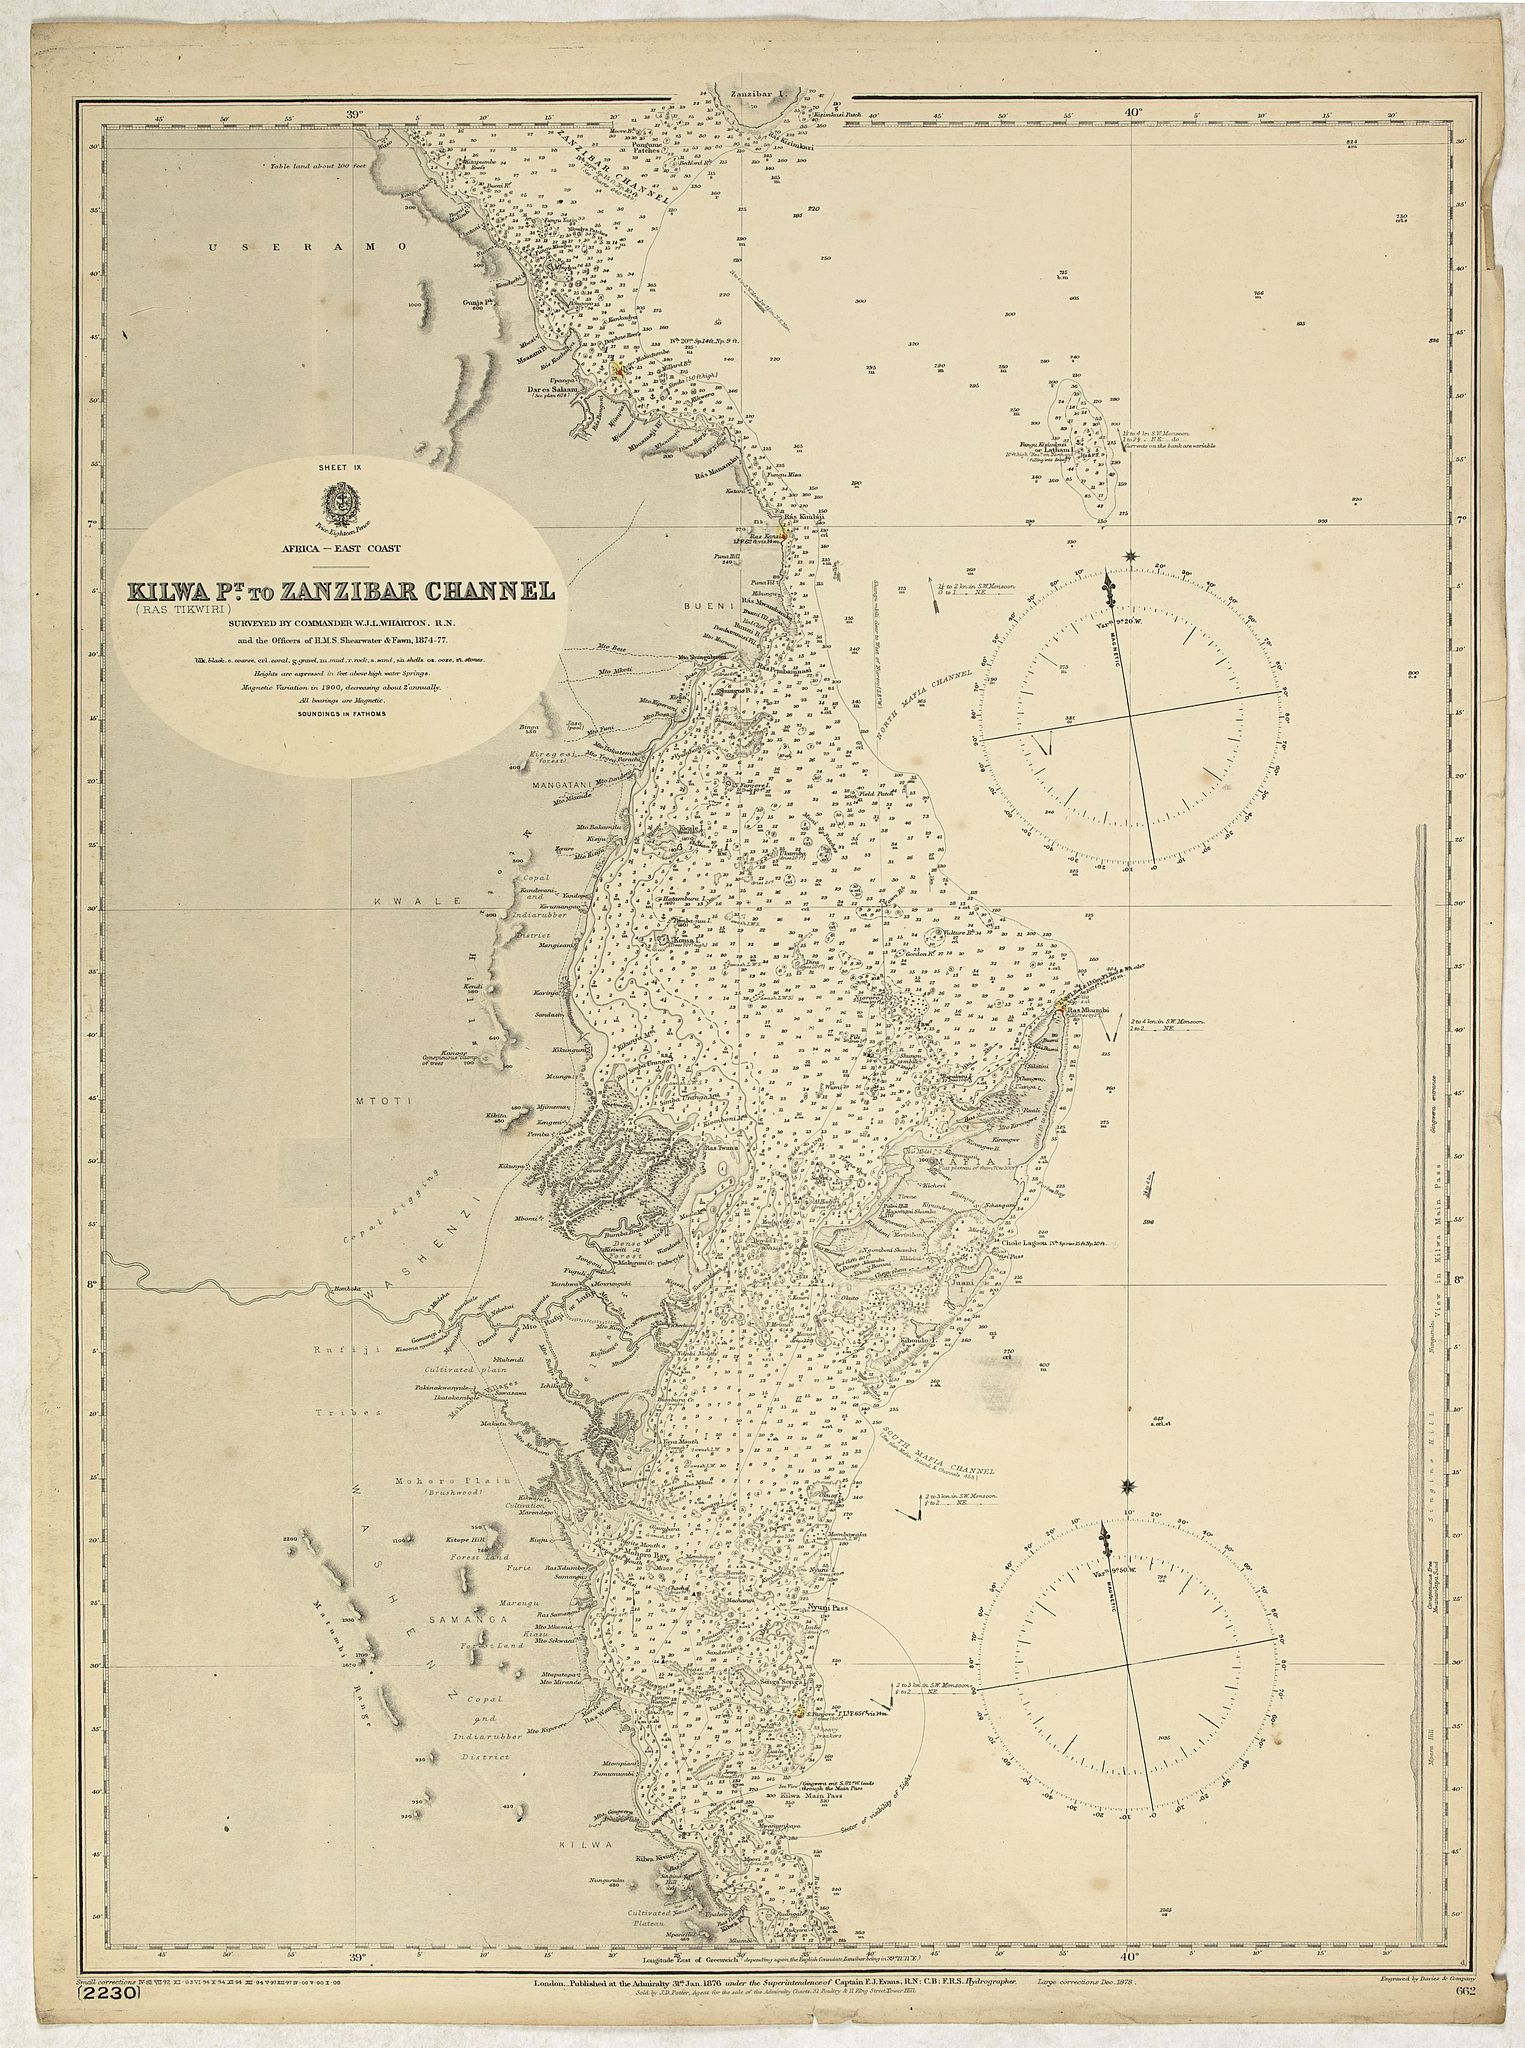 BRITISH ADMIRALTY CHART. -  Sheet IX Africa east coast Kilwa P.t to Zanzibar Channel Surveyed by Commander W. J. L. Wharton… , F. J. Gray, R. N., … 1874-77…  Magnetic variation in 1900, decreasing about 2' annually.